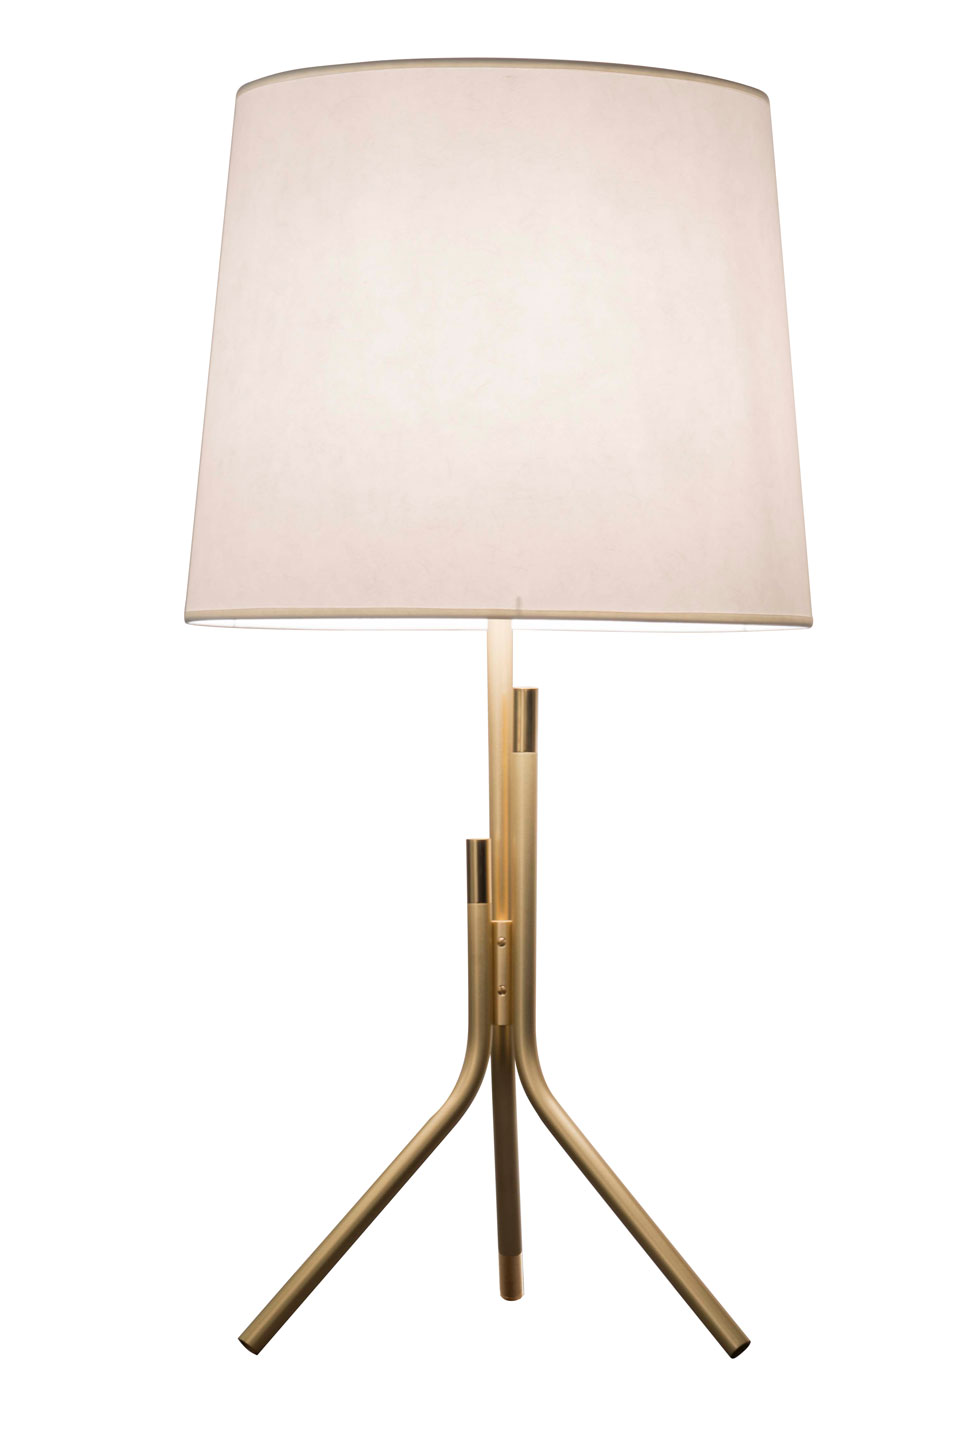 Ellis design table lamp, matte gold and bright white big lampshade. CVL Luminaires.